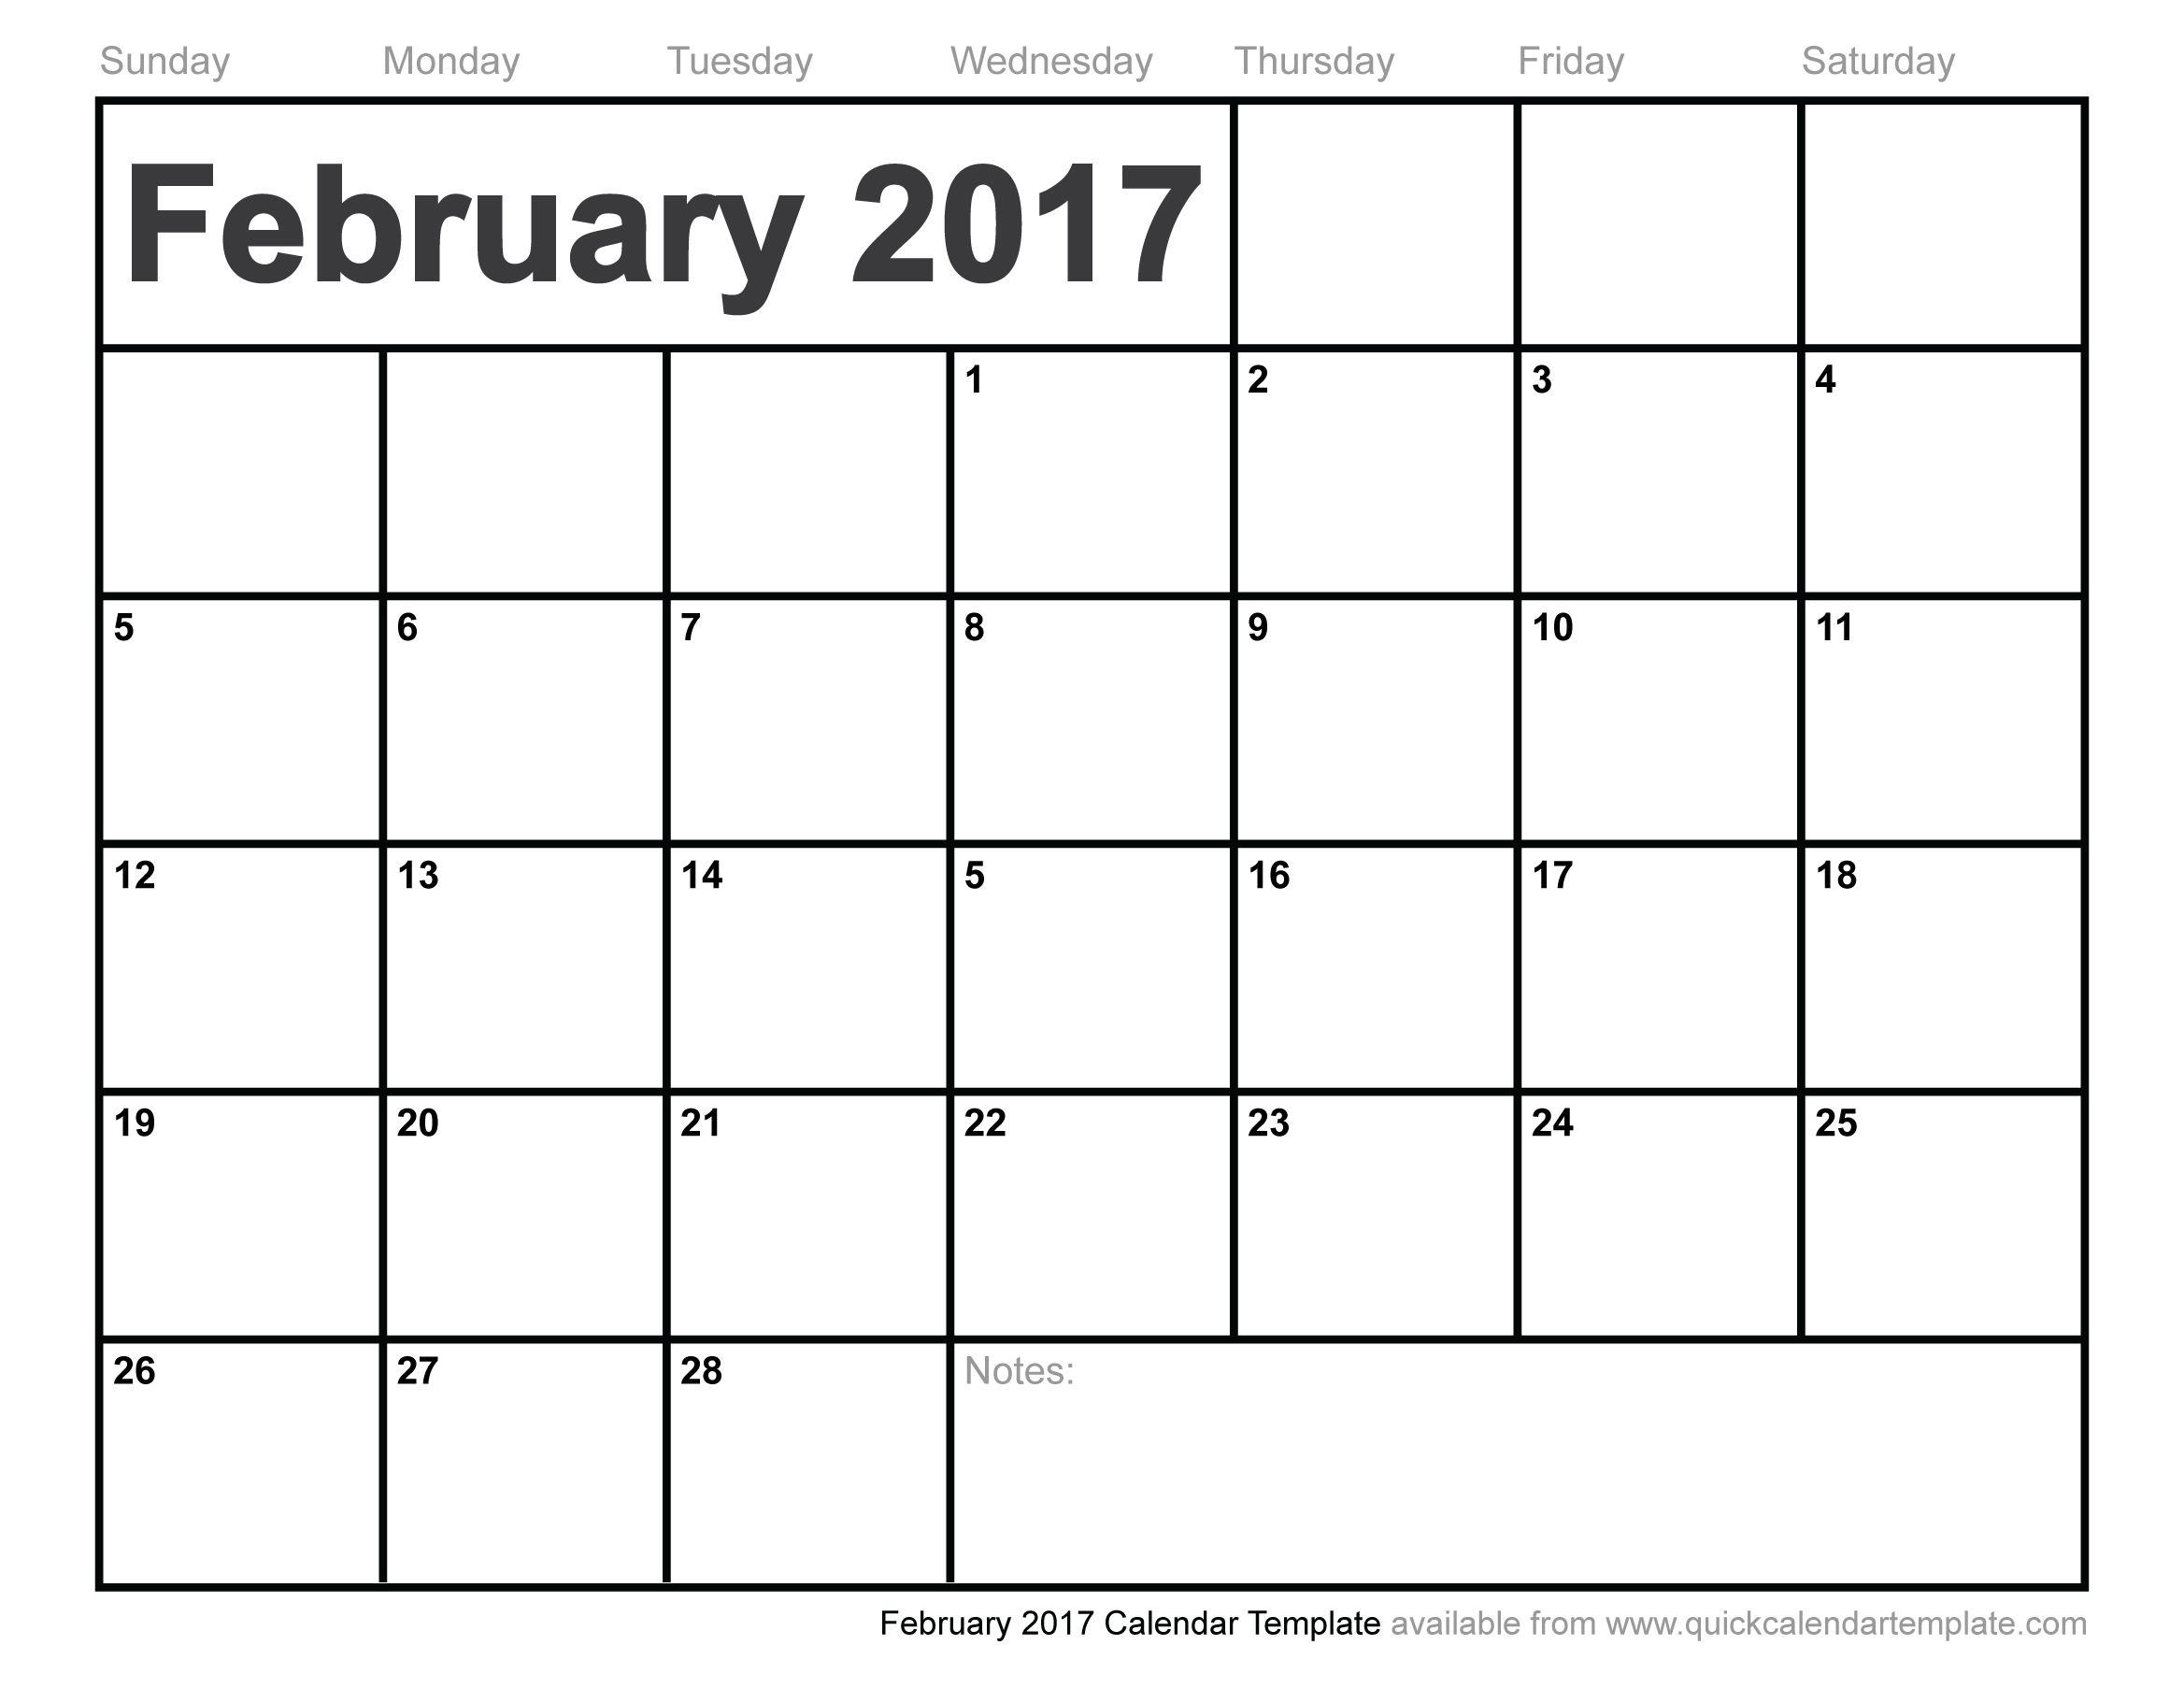 February Calendar Template With Images